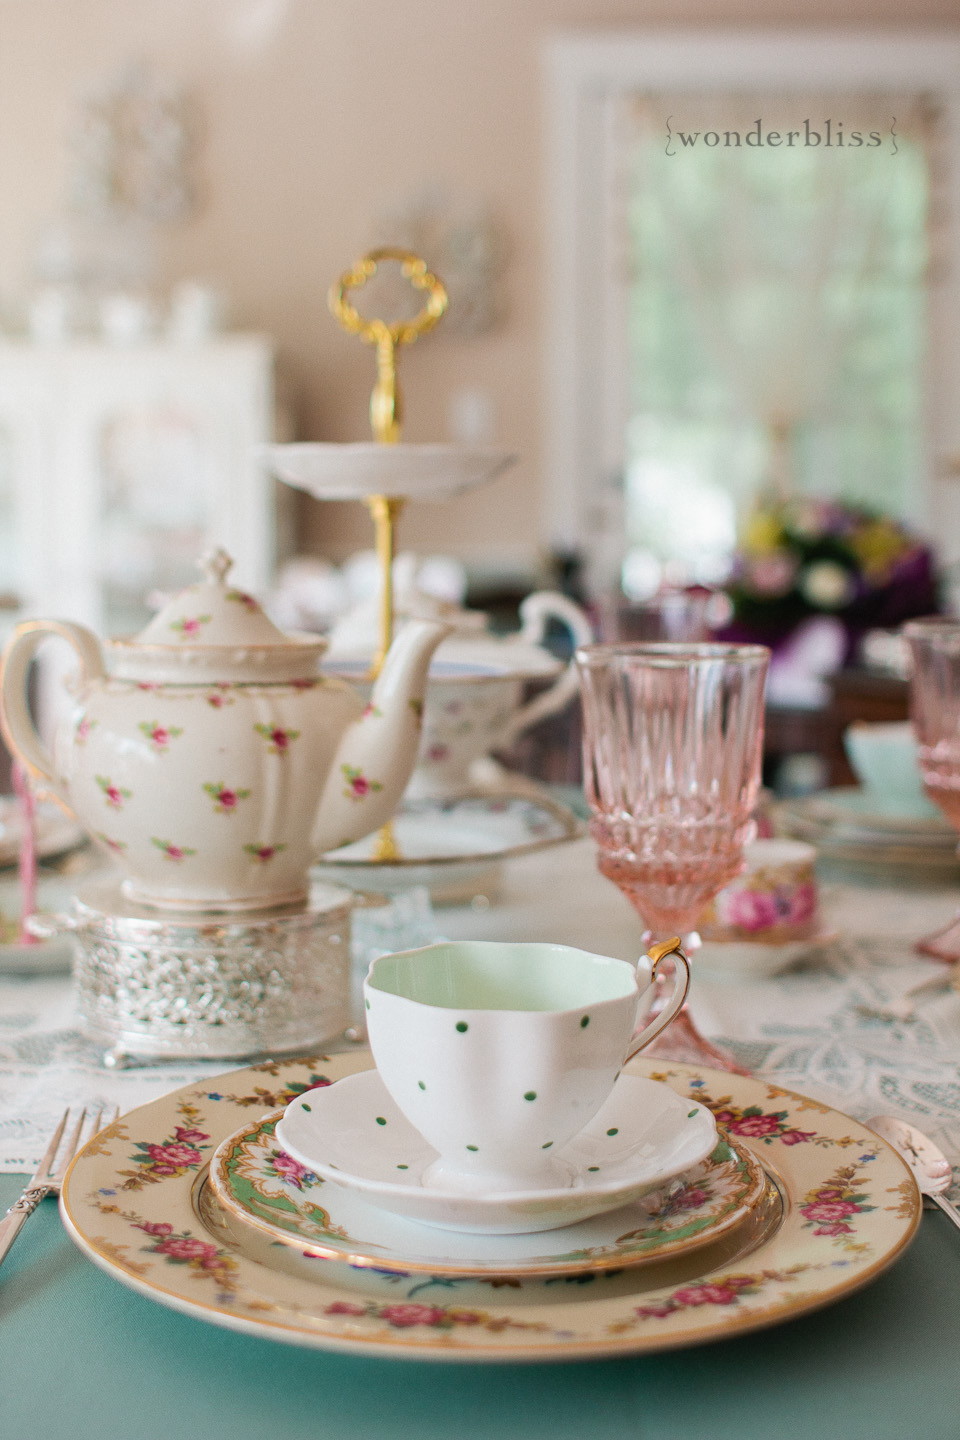 Wedding Wonders: Vintage plate and tea party rentals by ...